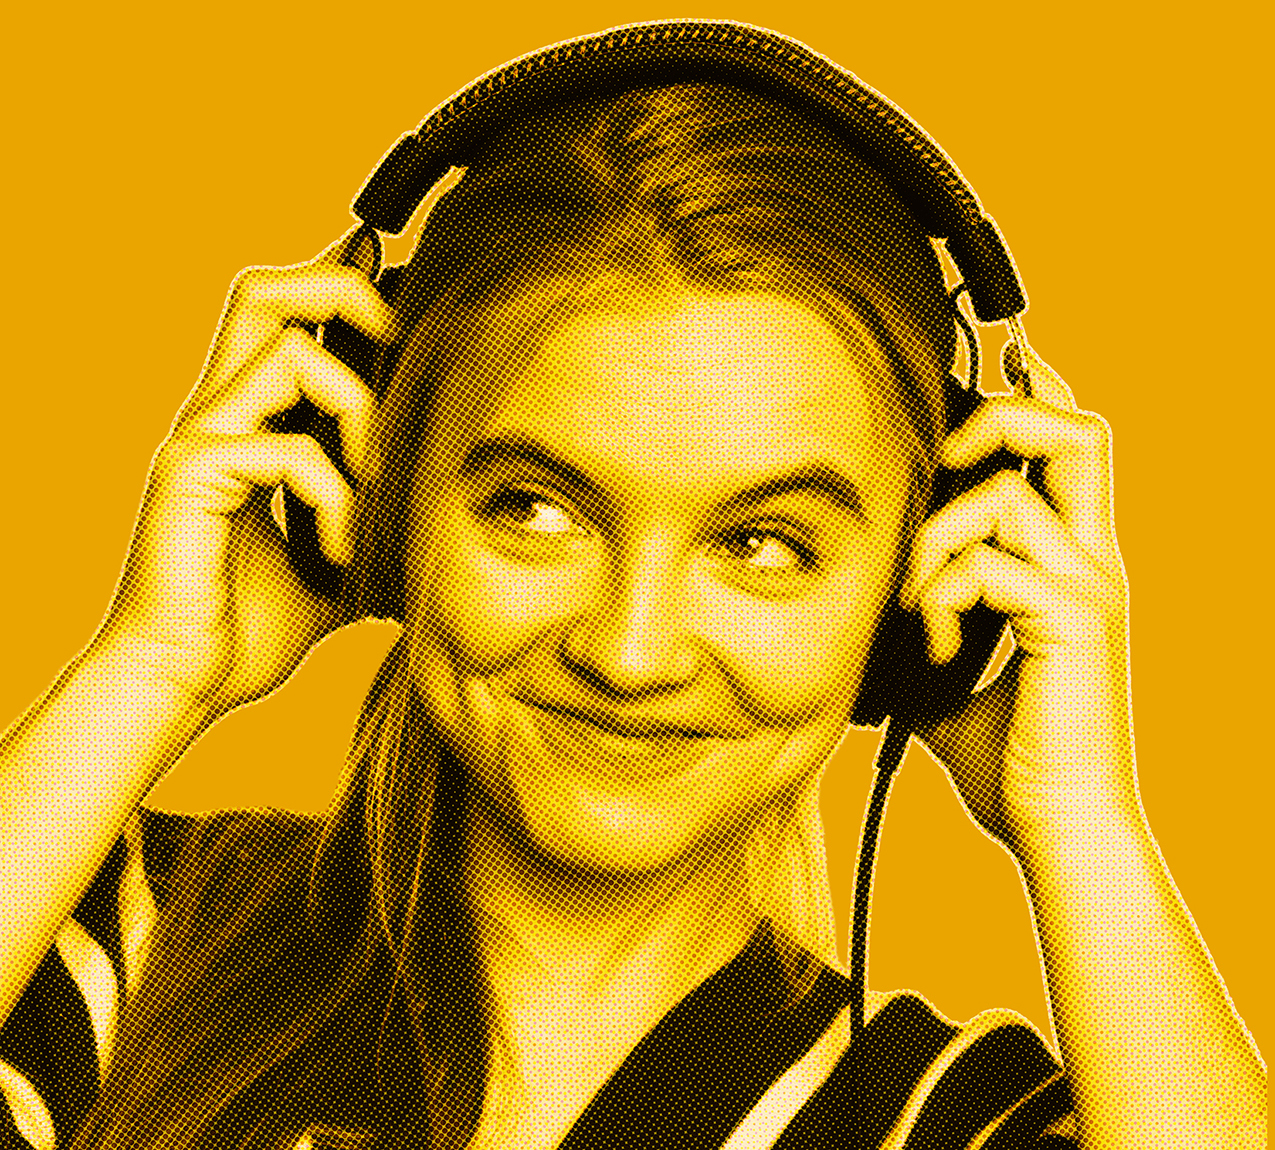 Yellow filtered picture of woman's head smiling looking to the side while wearing and holding headphones with her hands